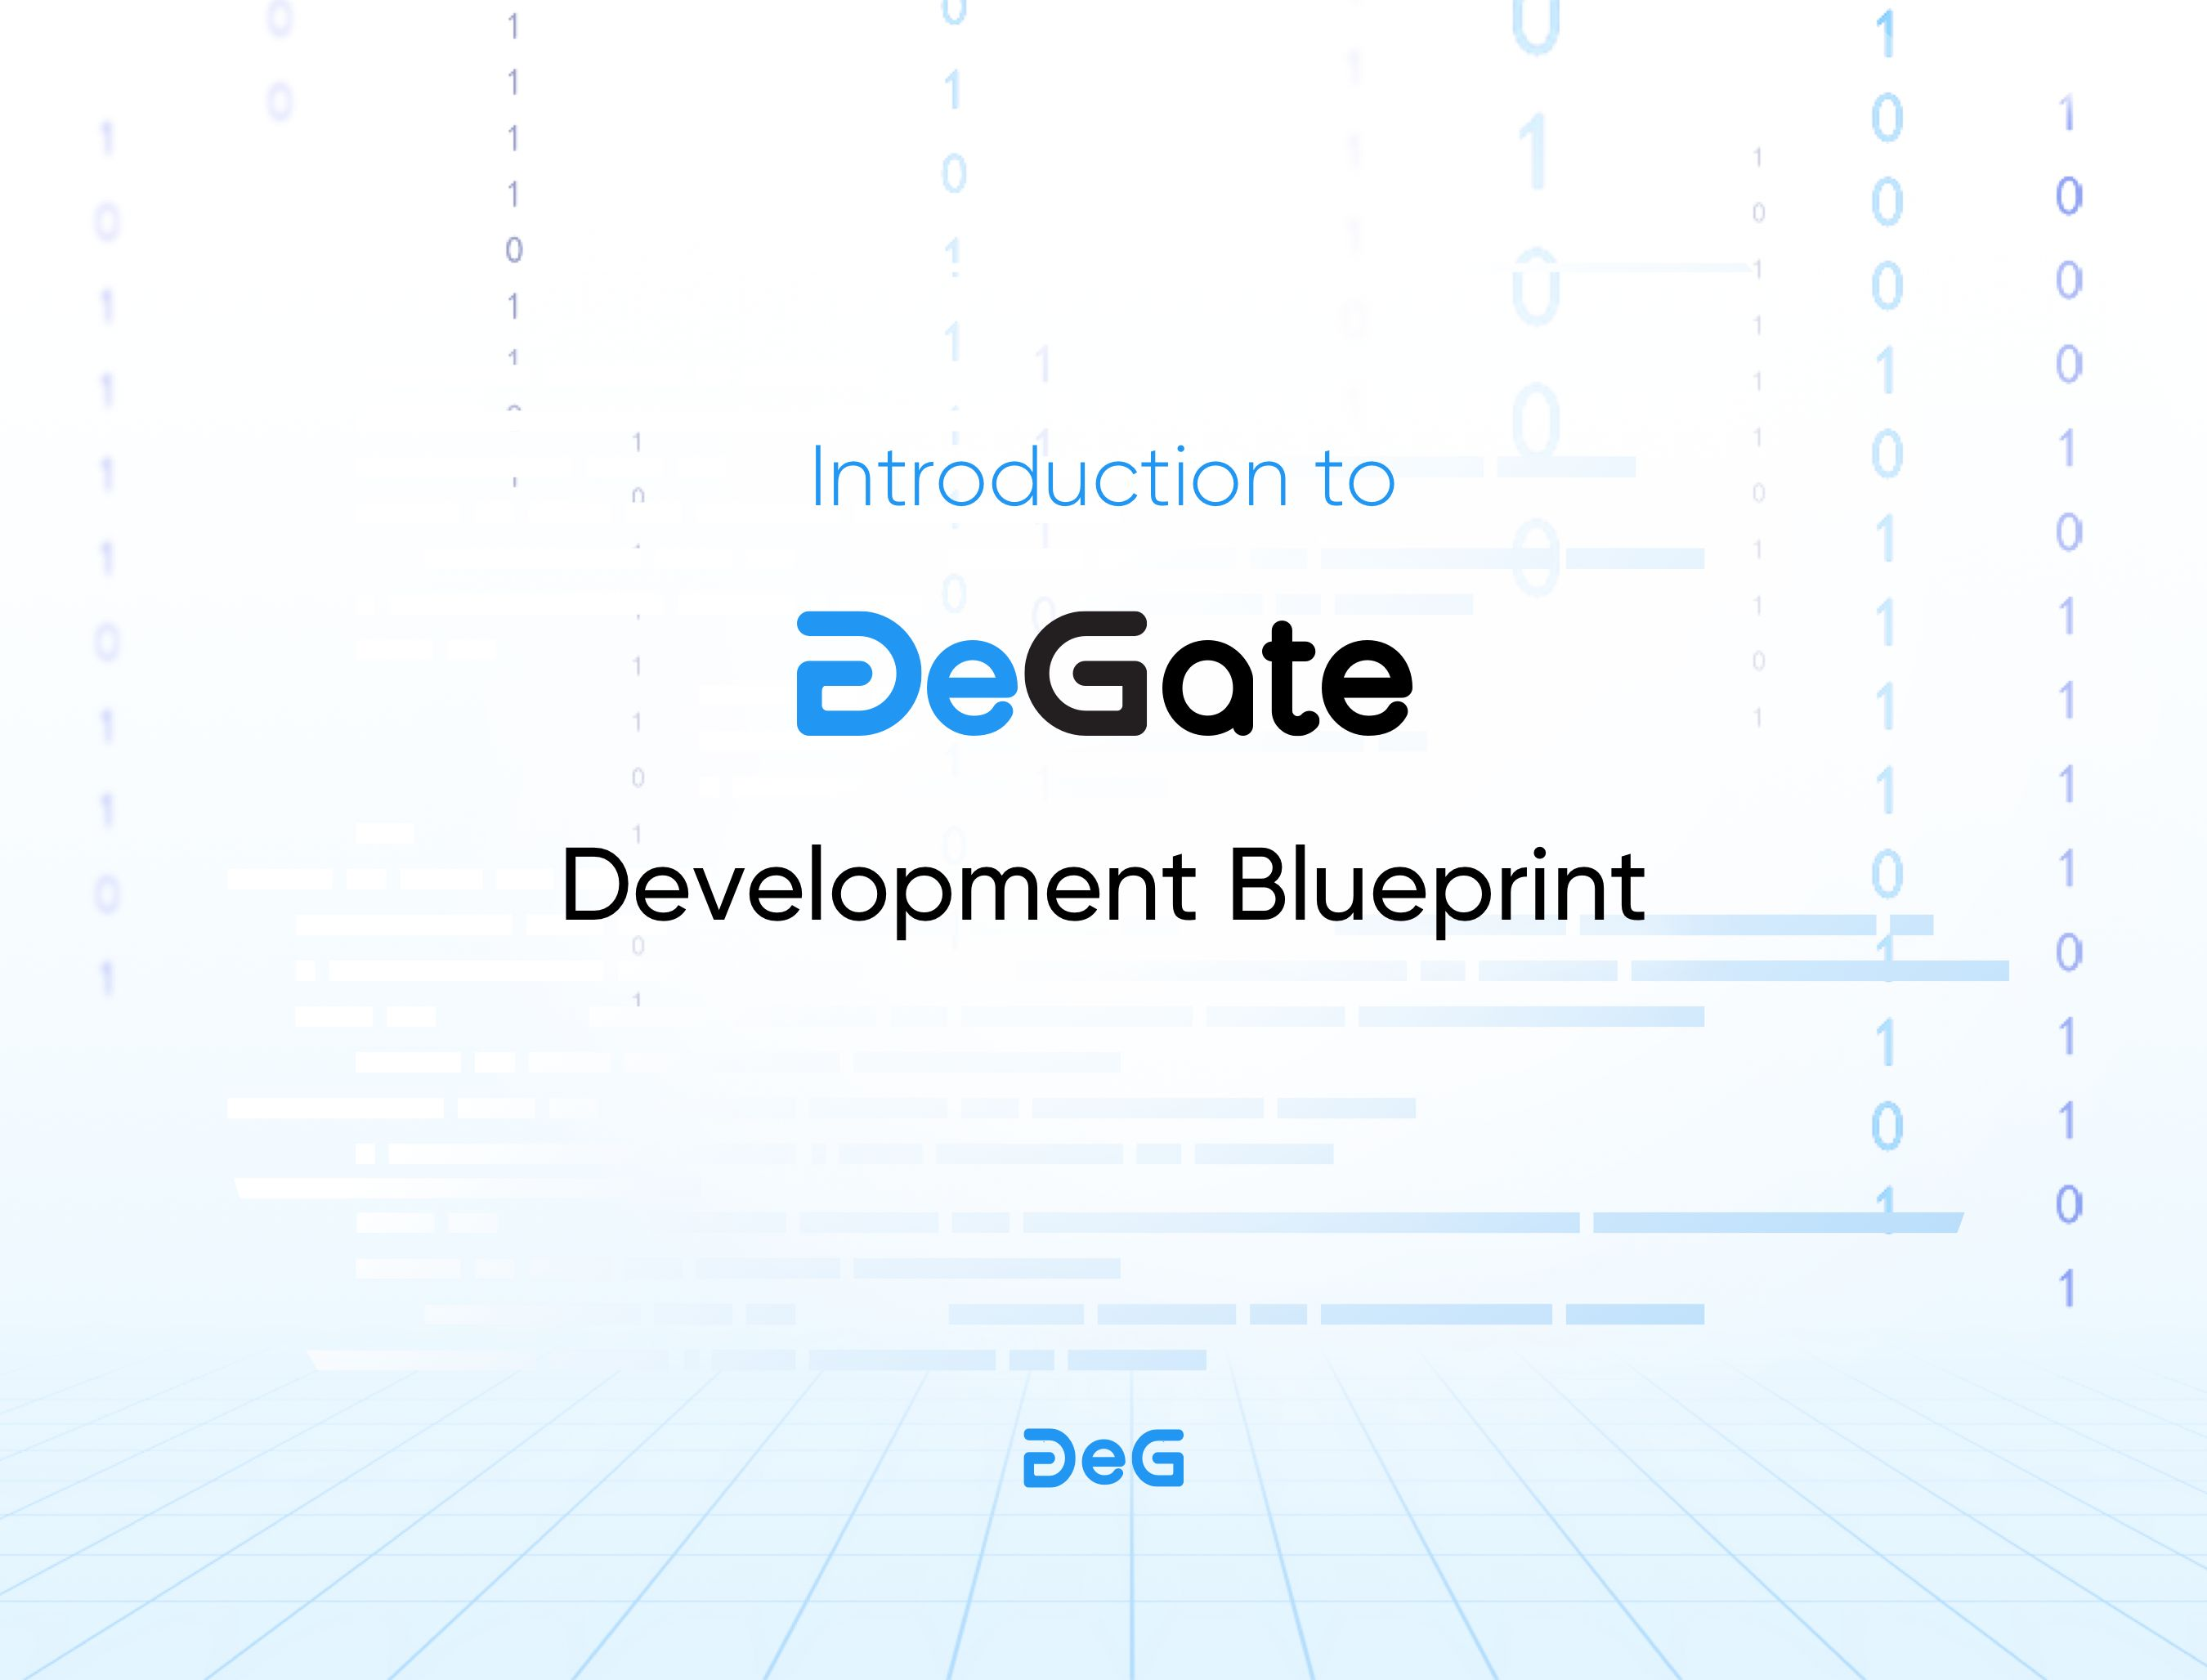 /an-introduction-to-our-development-blueprint-ue3d34mf feature image